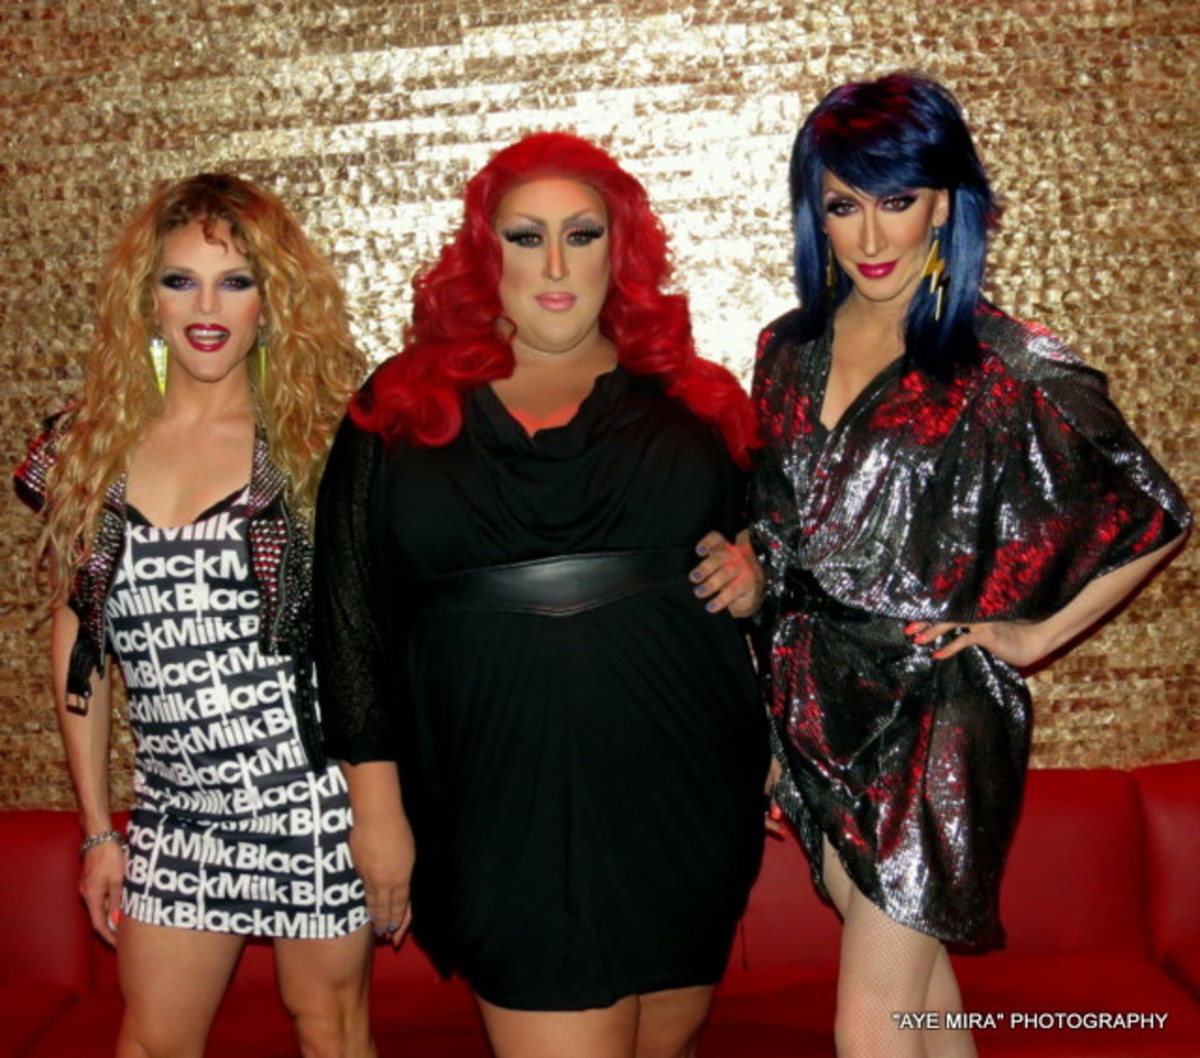 Queens Detox, William, and Vicky Vox at Venue nightclub in Houston, TX in 2013